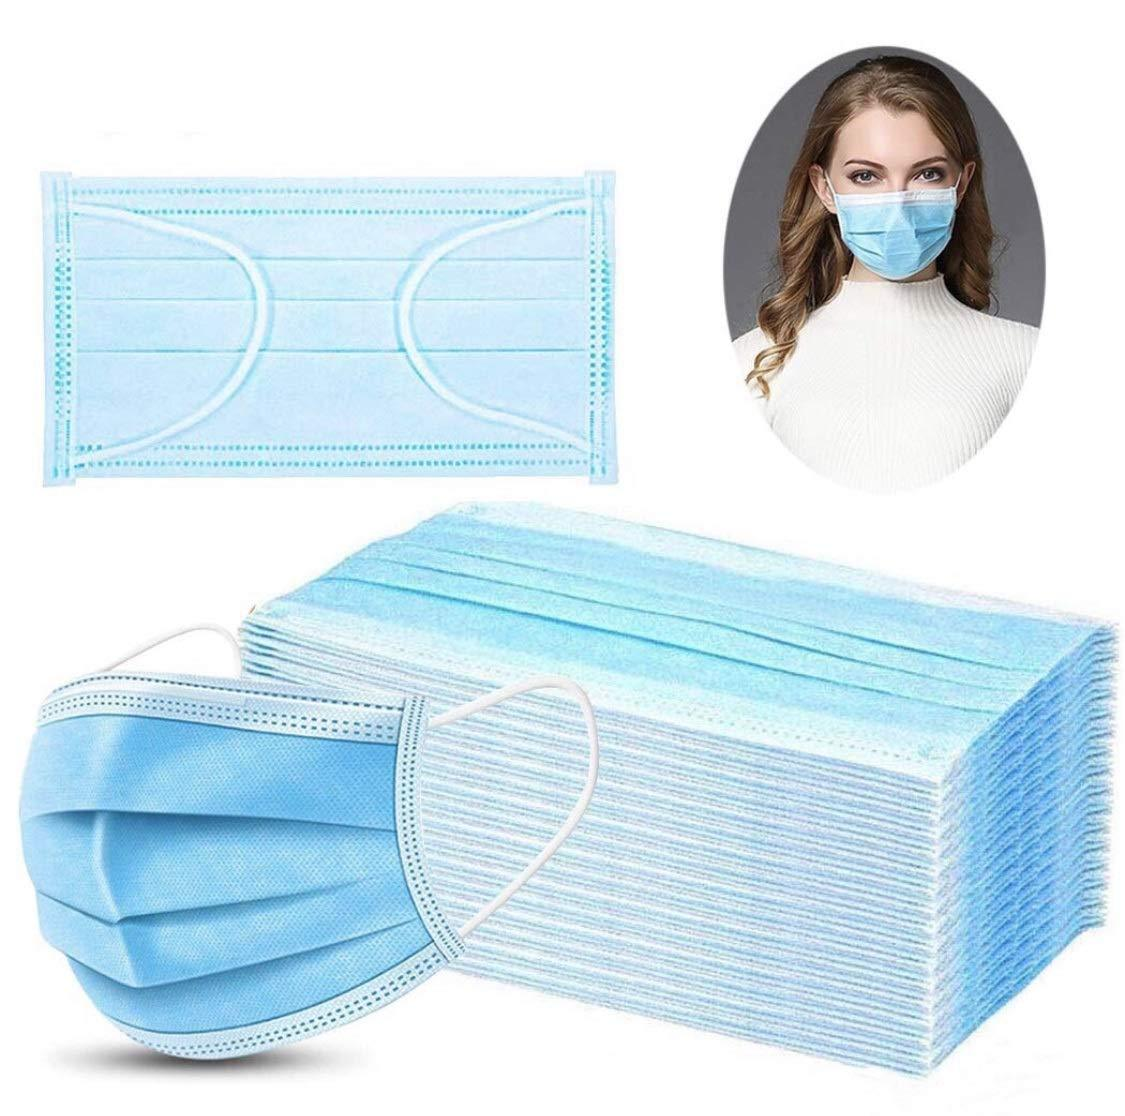 Wholesale NY Deal Face Masks for Corona Virus COVID-19 Disposable 3-Layer Anti Dust Anti Virus Breathable Comfortable Medical Sanitary Surgical Mask N6SK